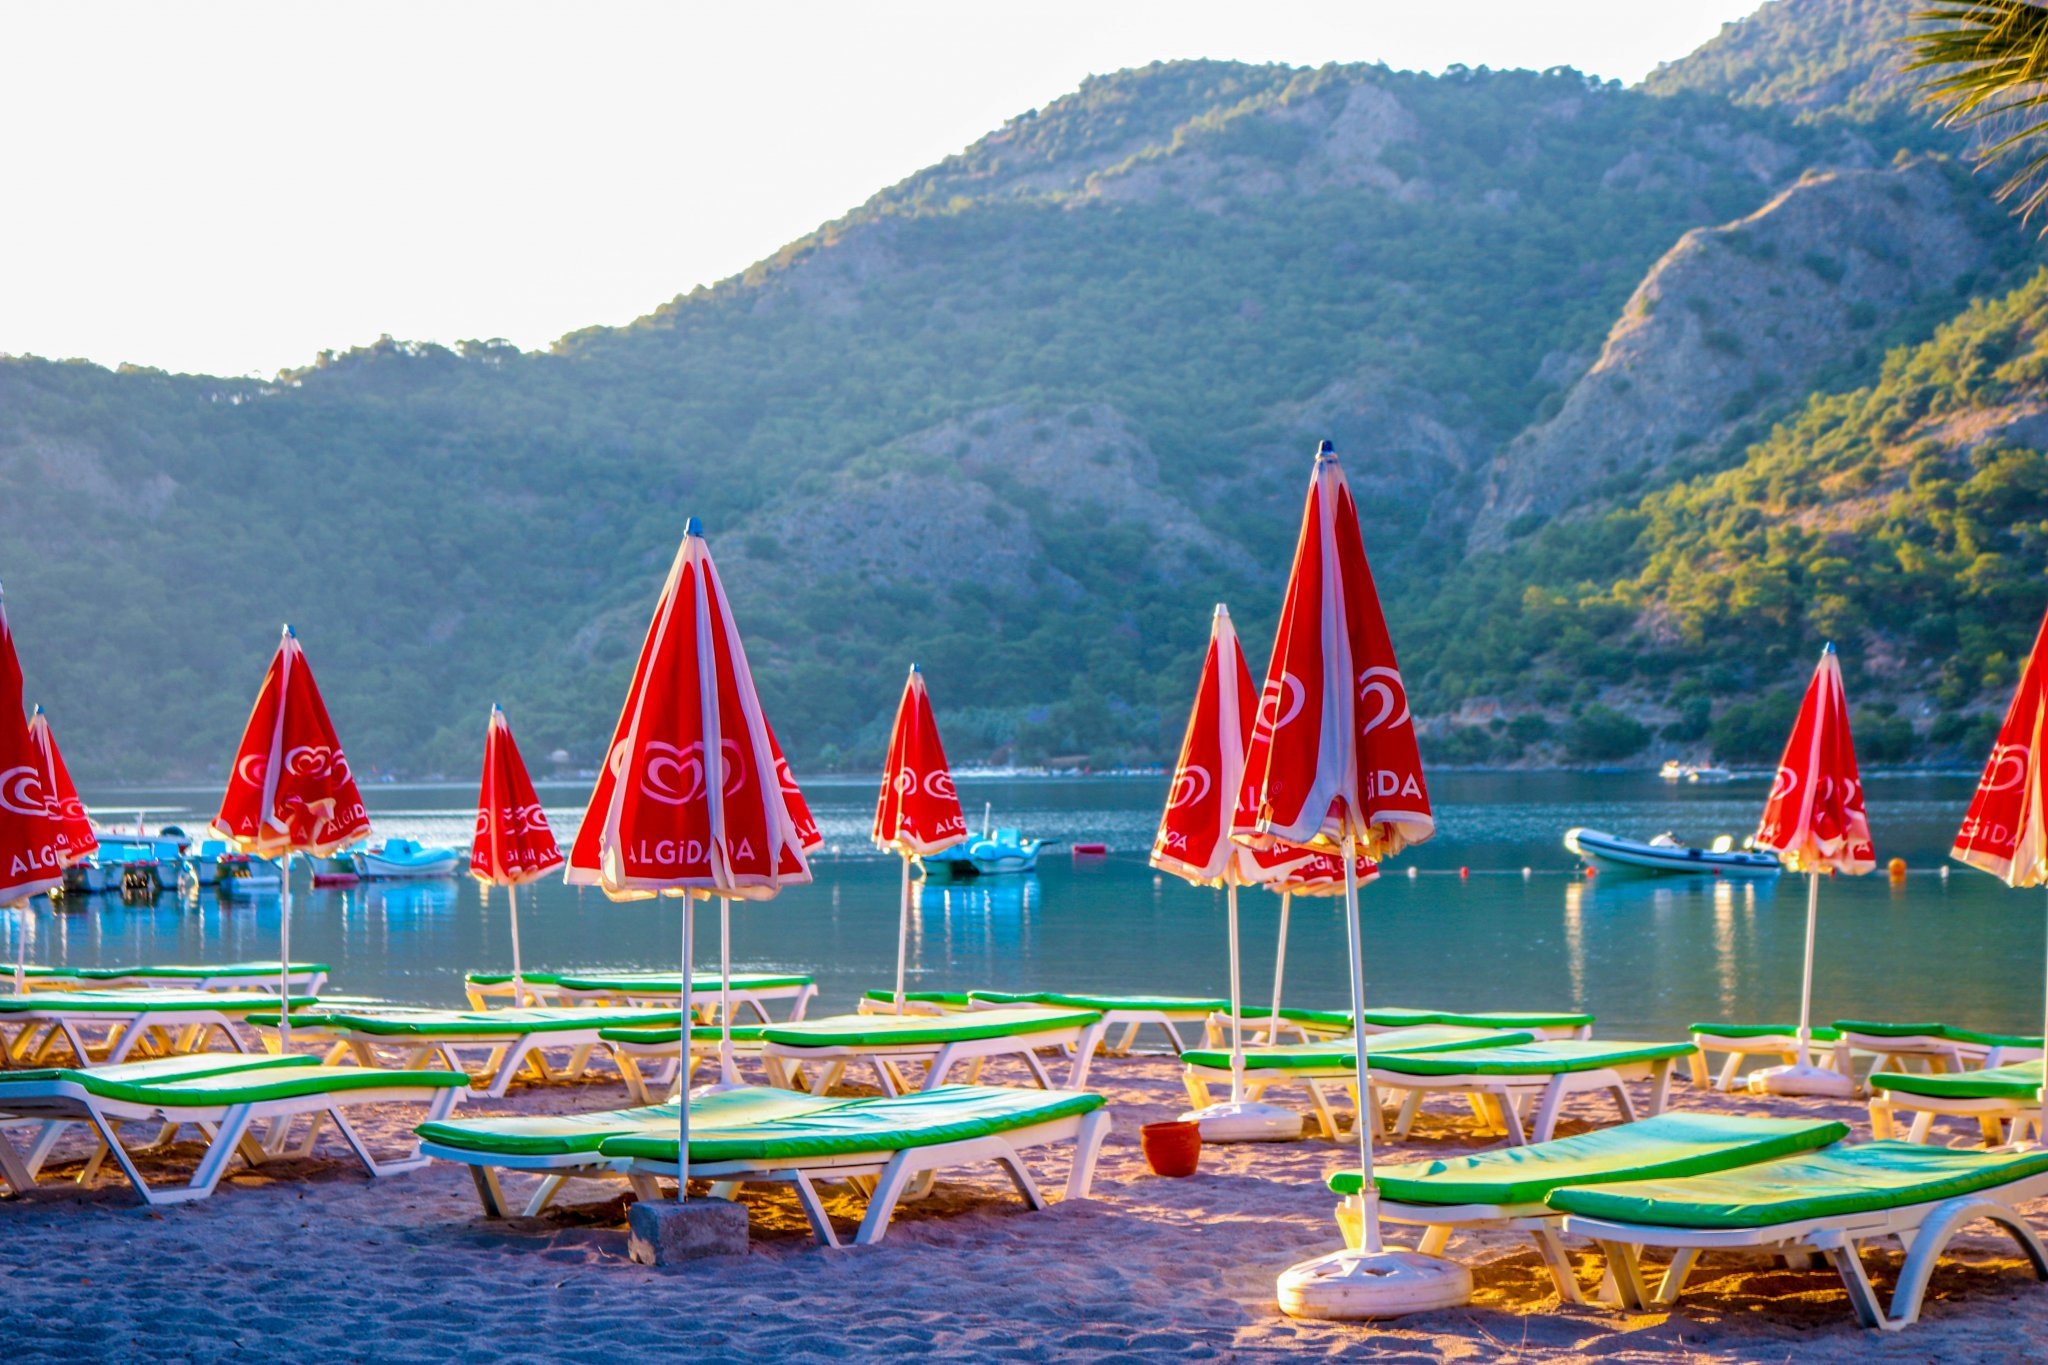 Guide to Dalaman - Turkey's Turquoise Coast